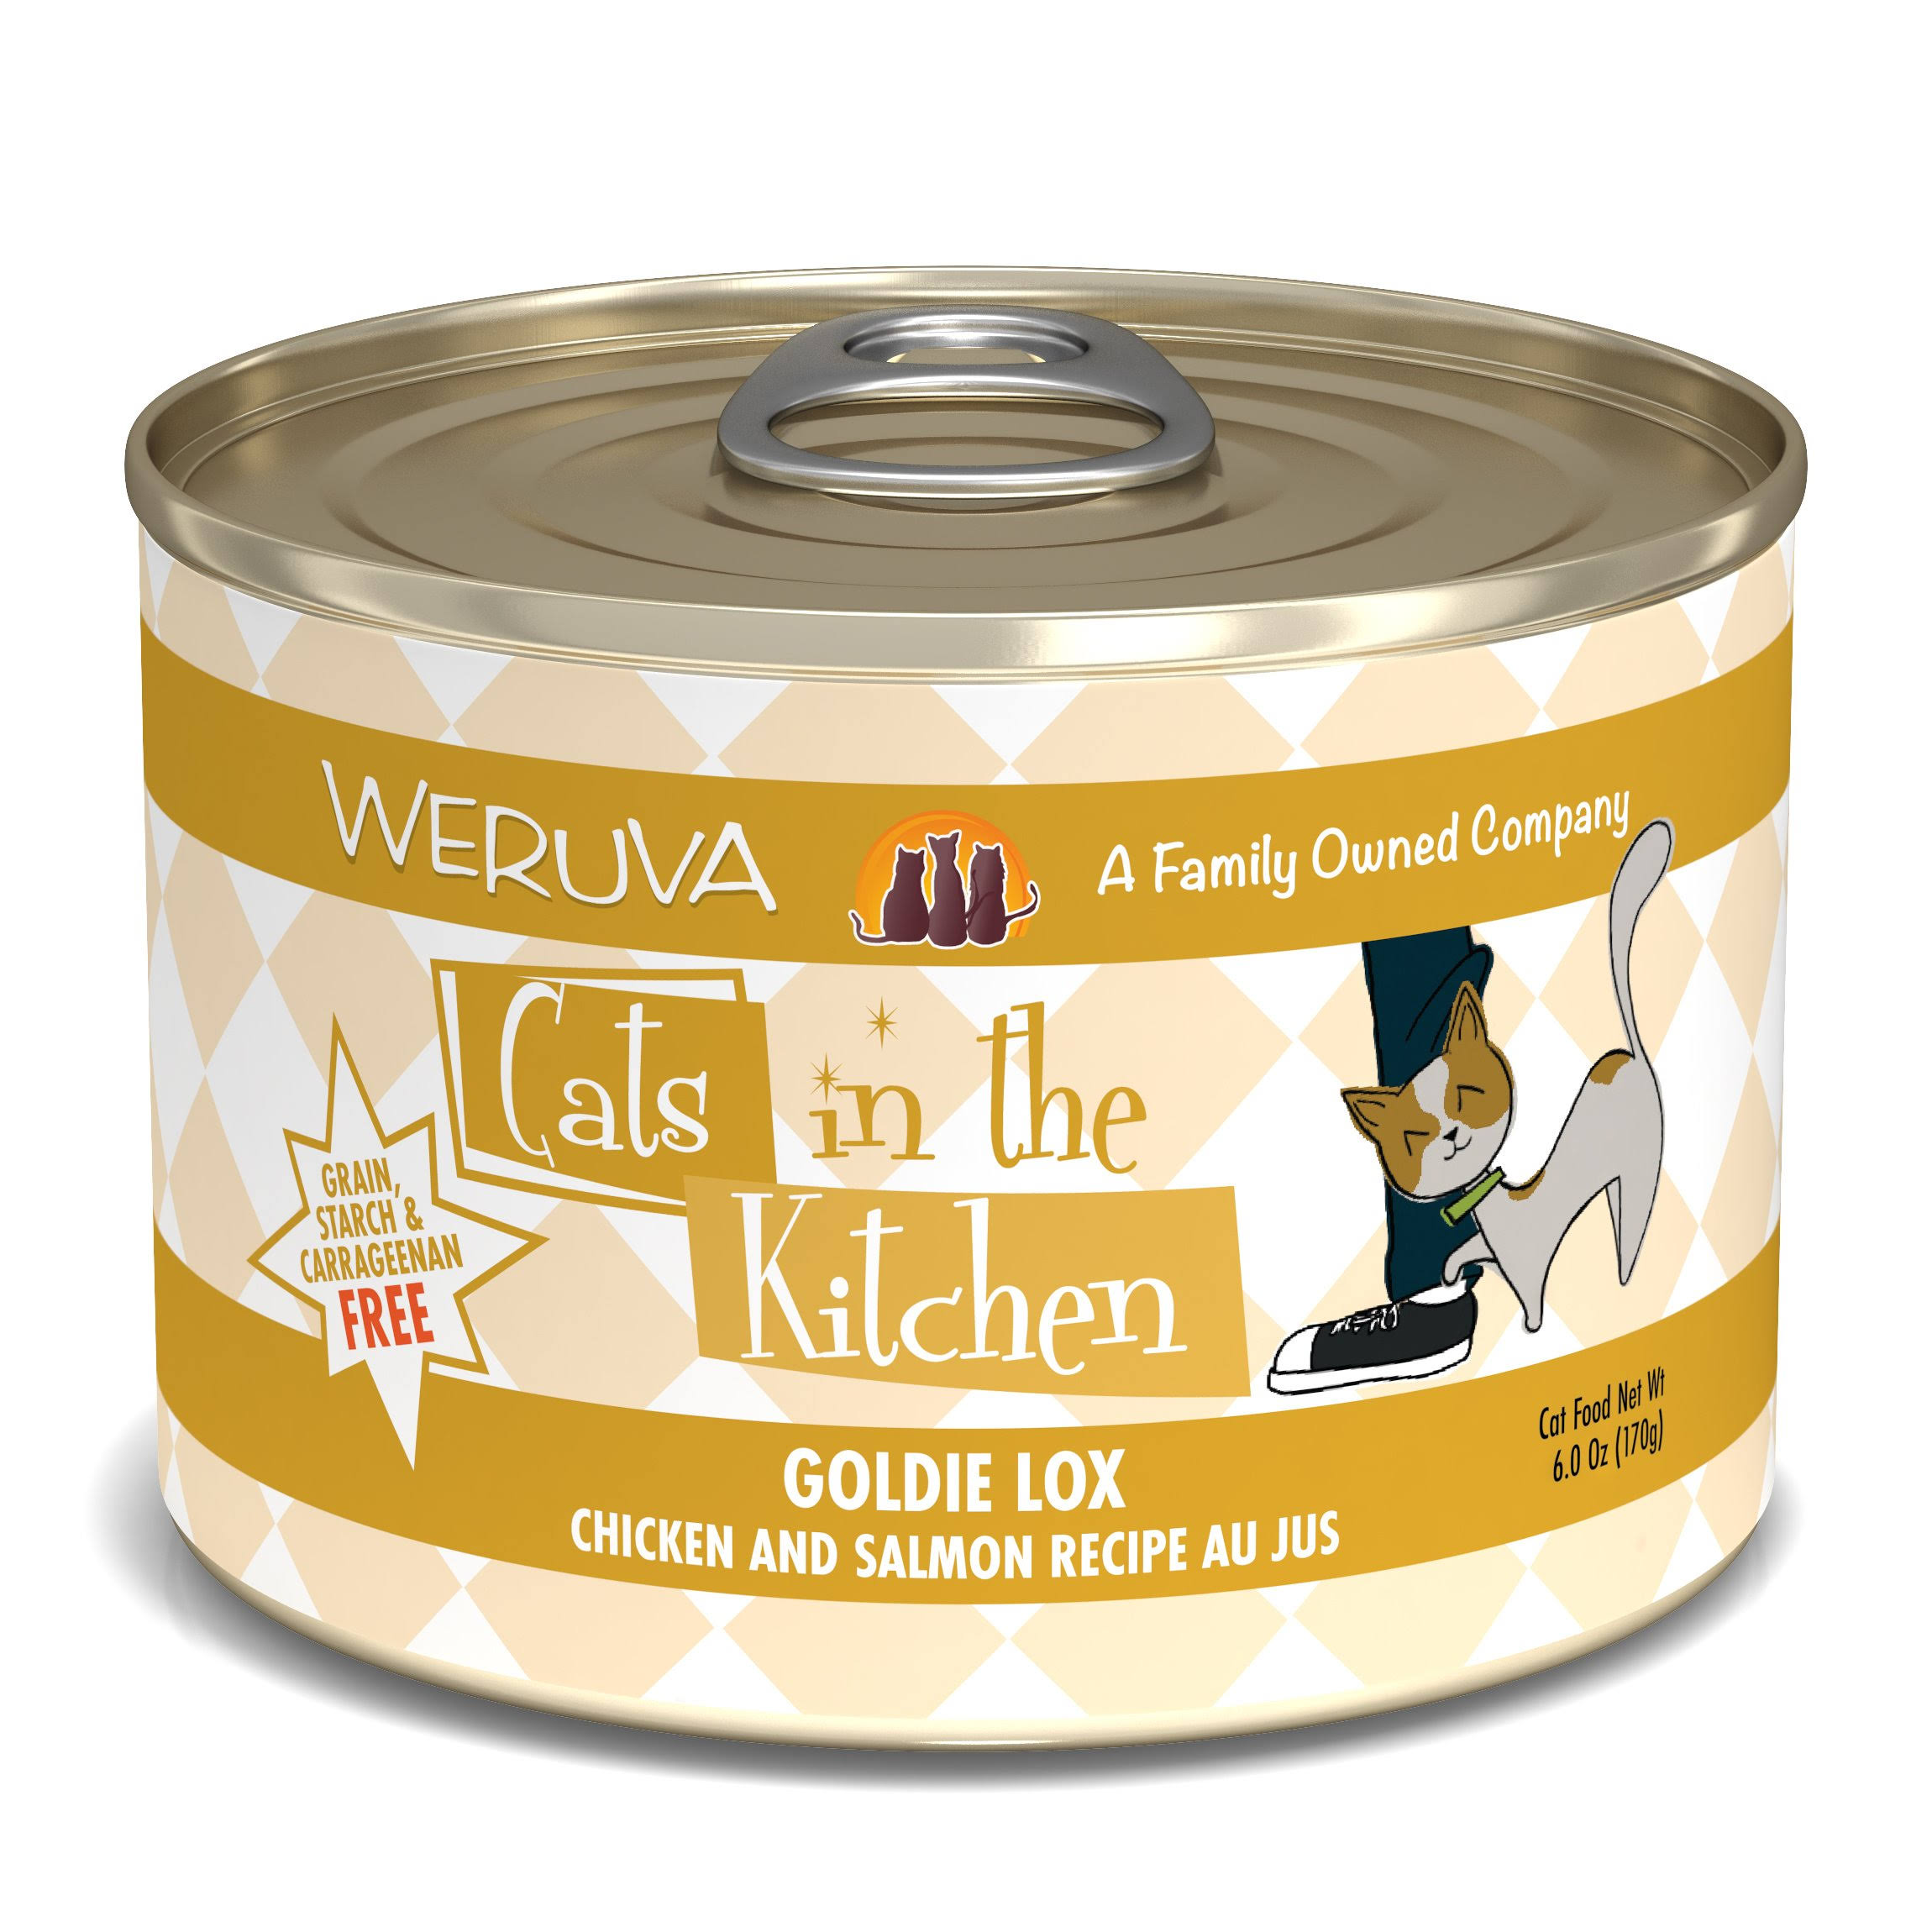 Weruva Cats in the Kitchen Goldie Lox Cat Food - 24 pack, 6 oz cans